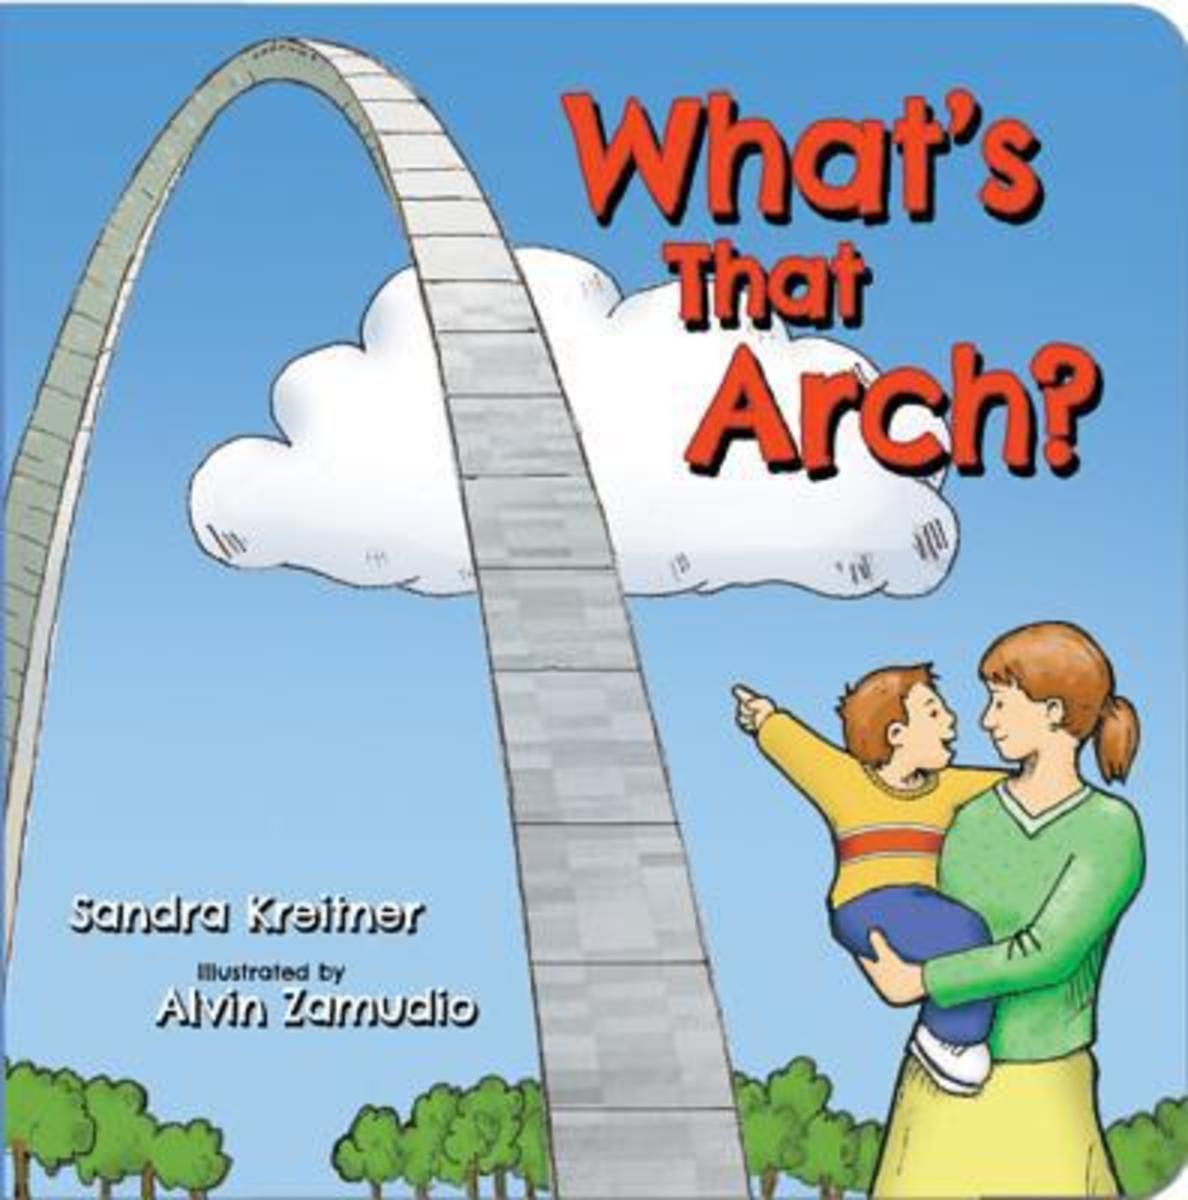 What's That Arch? Board book by Sandra Kreitner - Image is from booksamillion.com